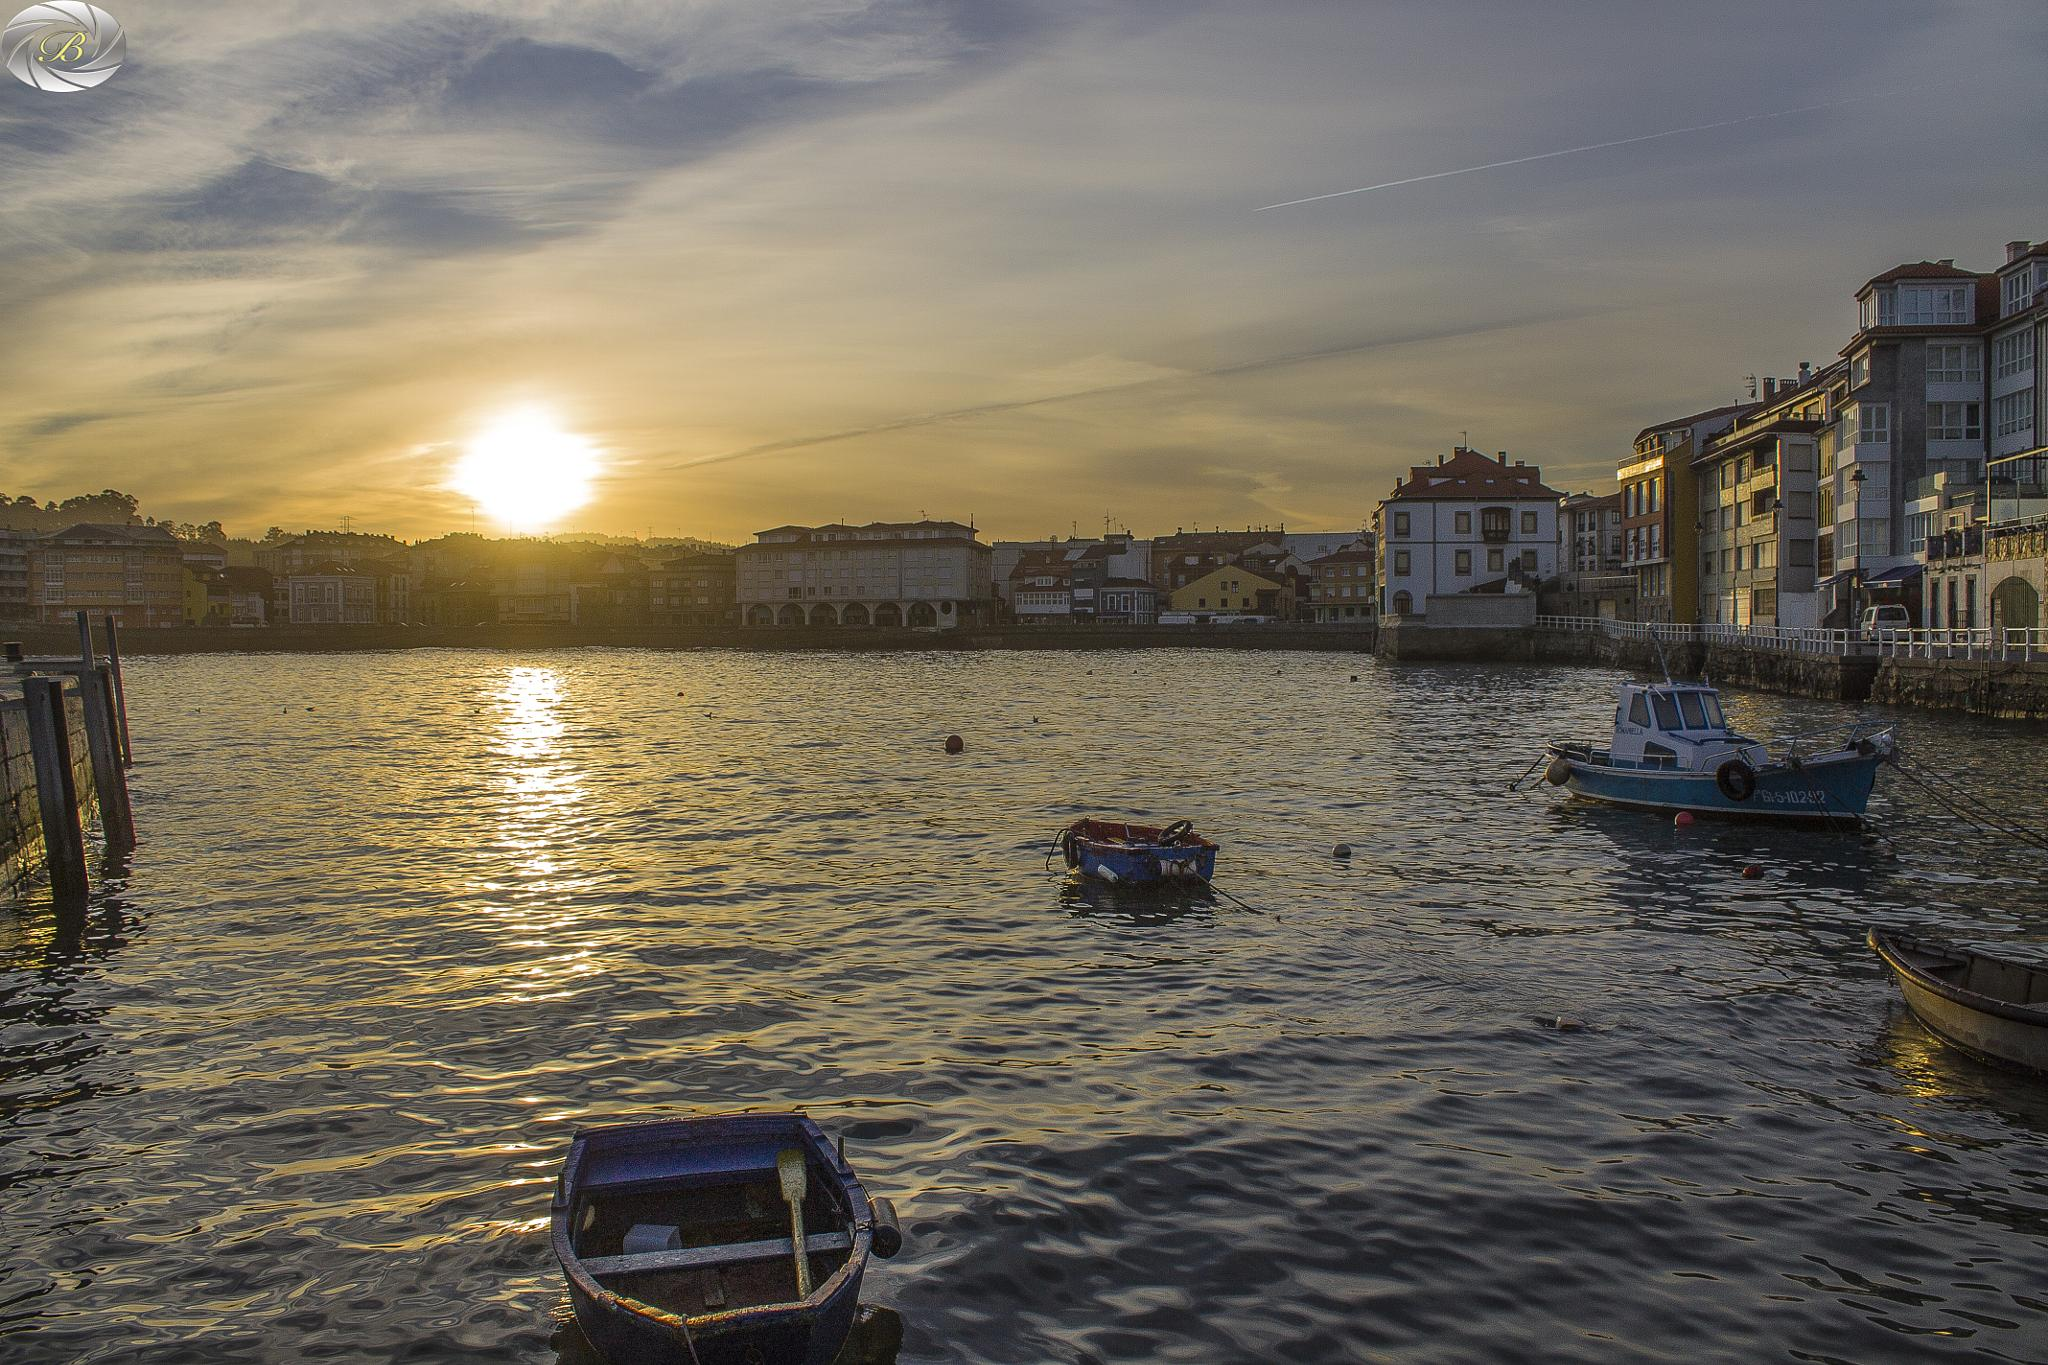 sunset in Luanco(Asturias-Spain) by bandalphotography